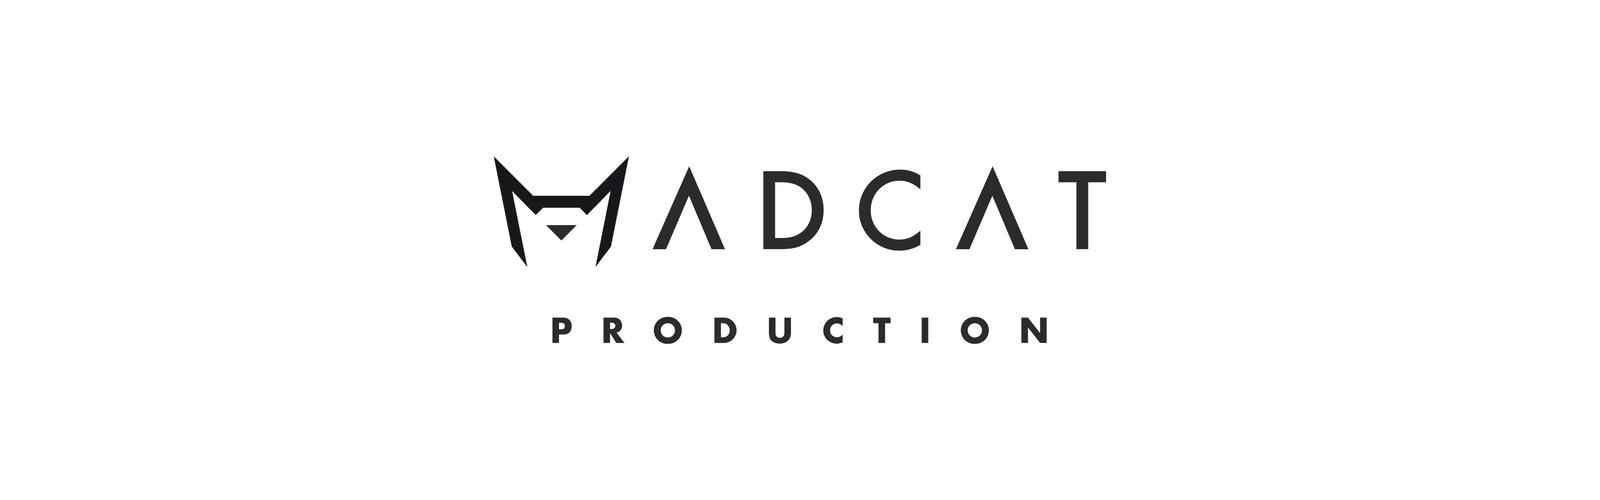 Wedding Time - Madcat - Video Production